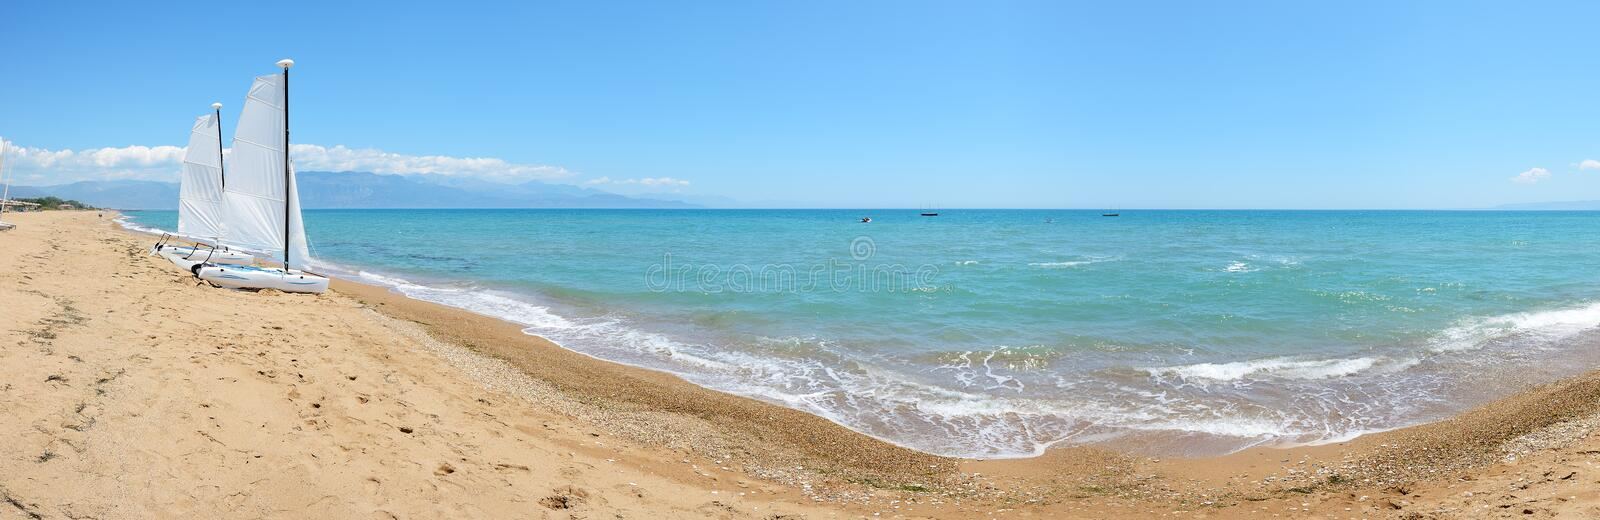 Download Panorama Of Sail Yachts On The Beach On Ionian Sea Stock Photo - Image: 32953720